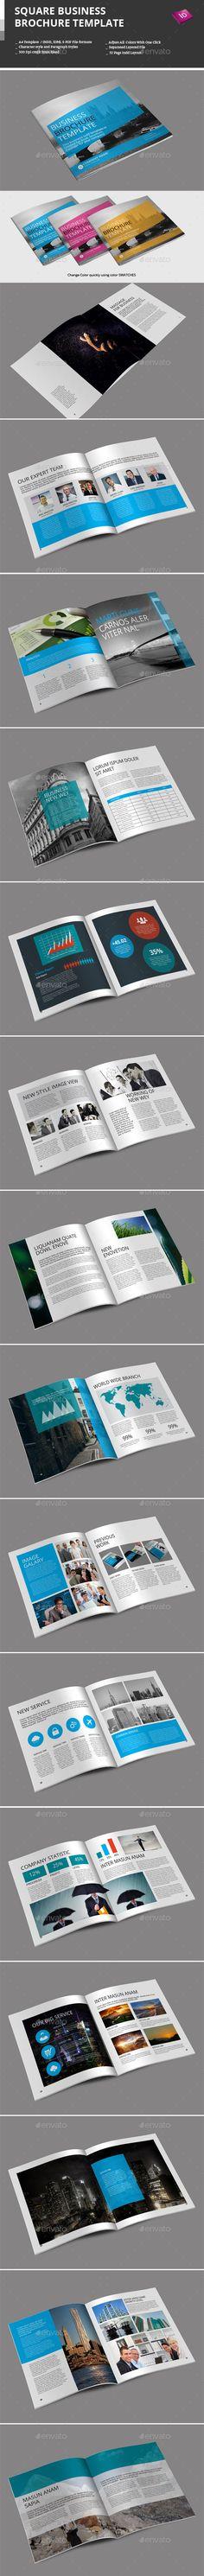 Square Business Brochure Template — InDesign INDD #corporate #layered • Available here → https://graphicriver.net/item/square-business-brochure-template/9476062?ref=pxcr